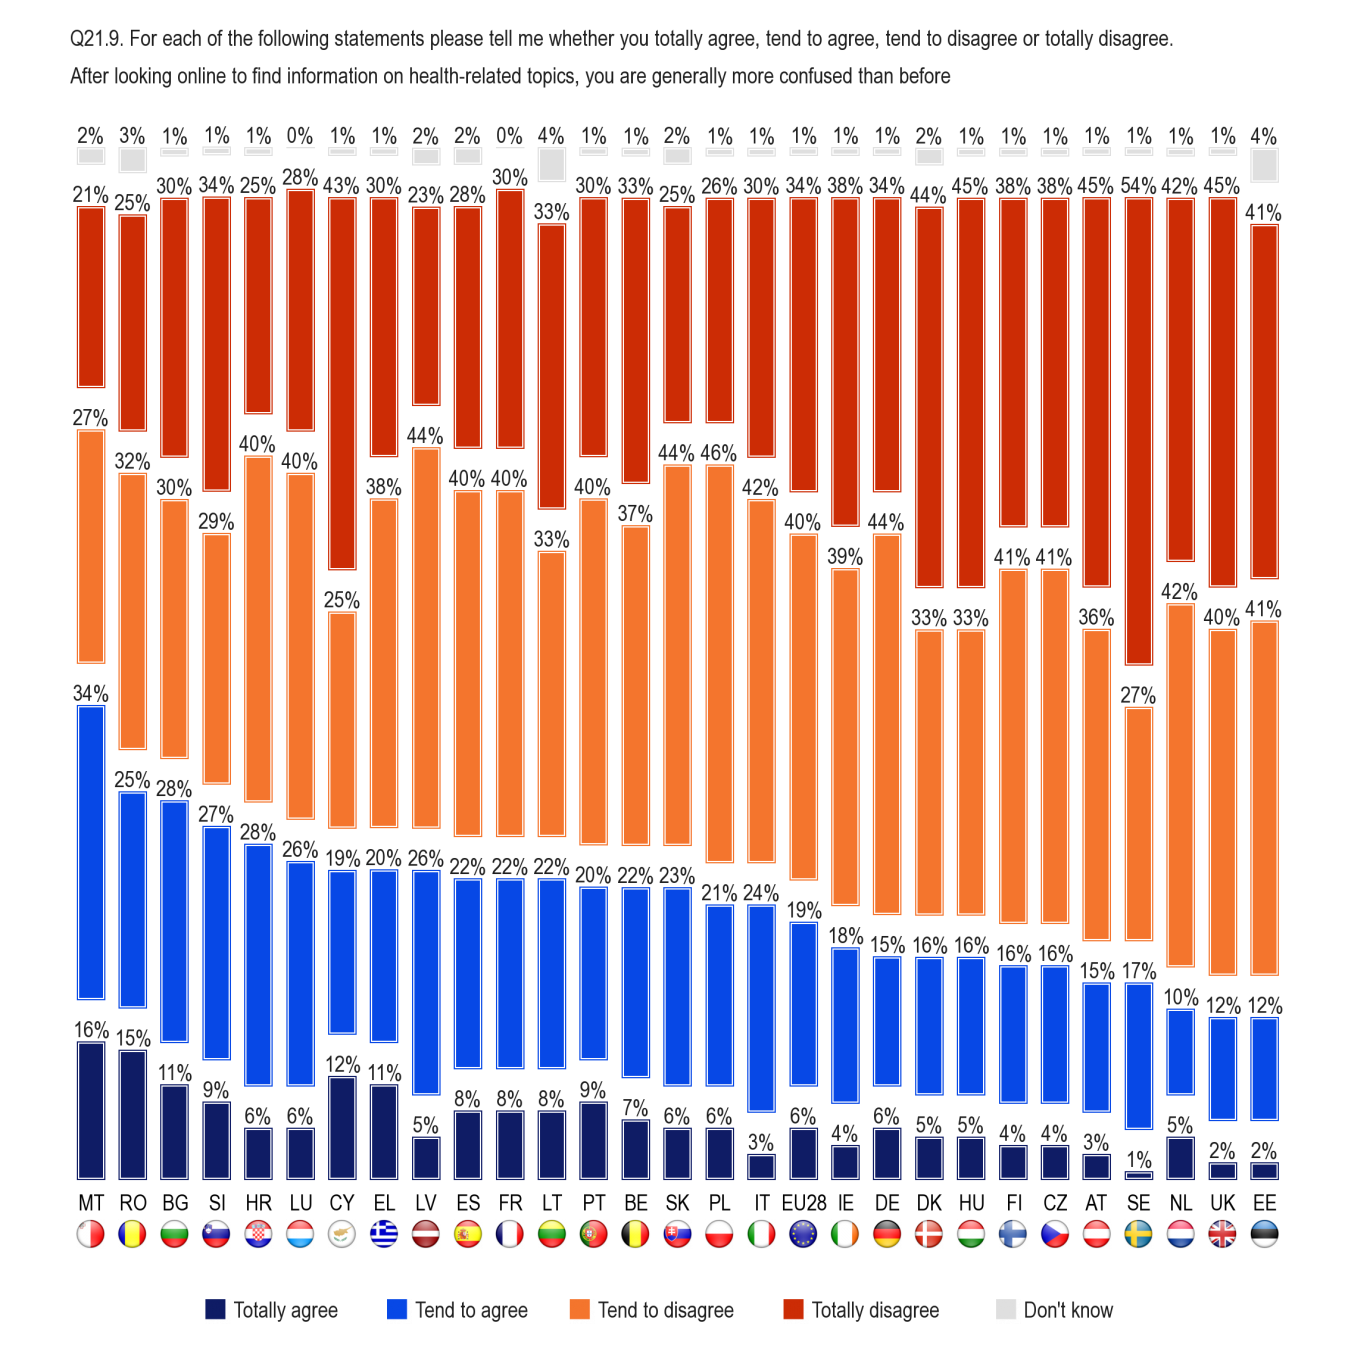 FLASH EUROBAROMETER Malta is the only country where more people agree (50%) than disagree (48%) that after looking online for health-related information, they generally feel more confused than before.